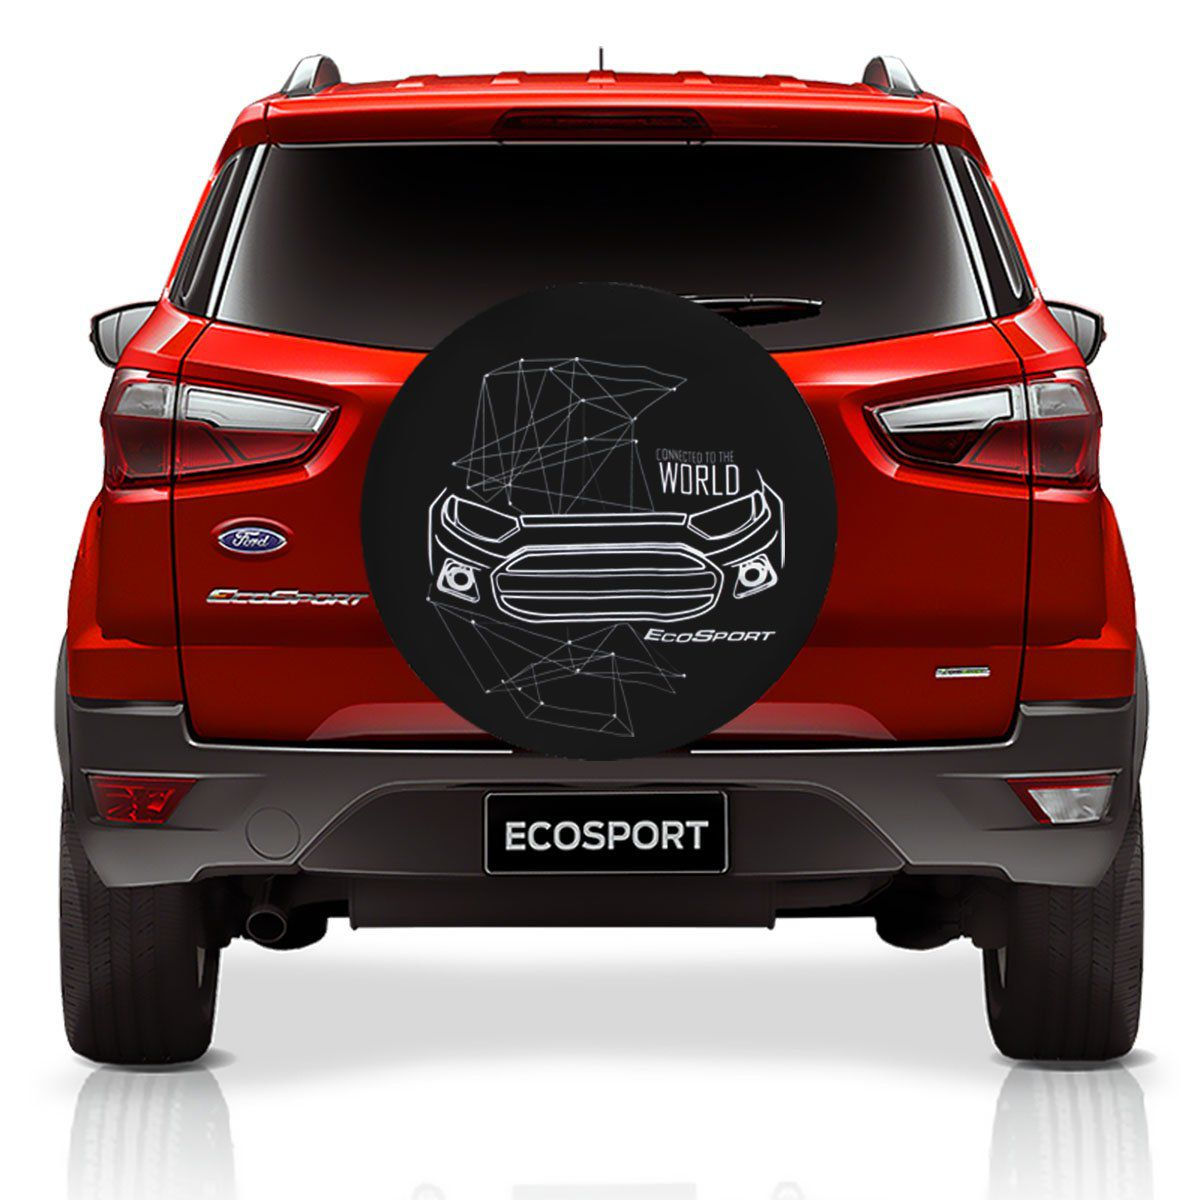 Capa De Estepe Ecosport 2003 a 2019 Estampa Connected to The World